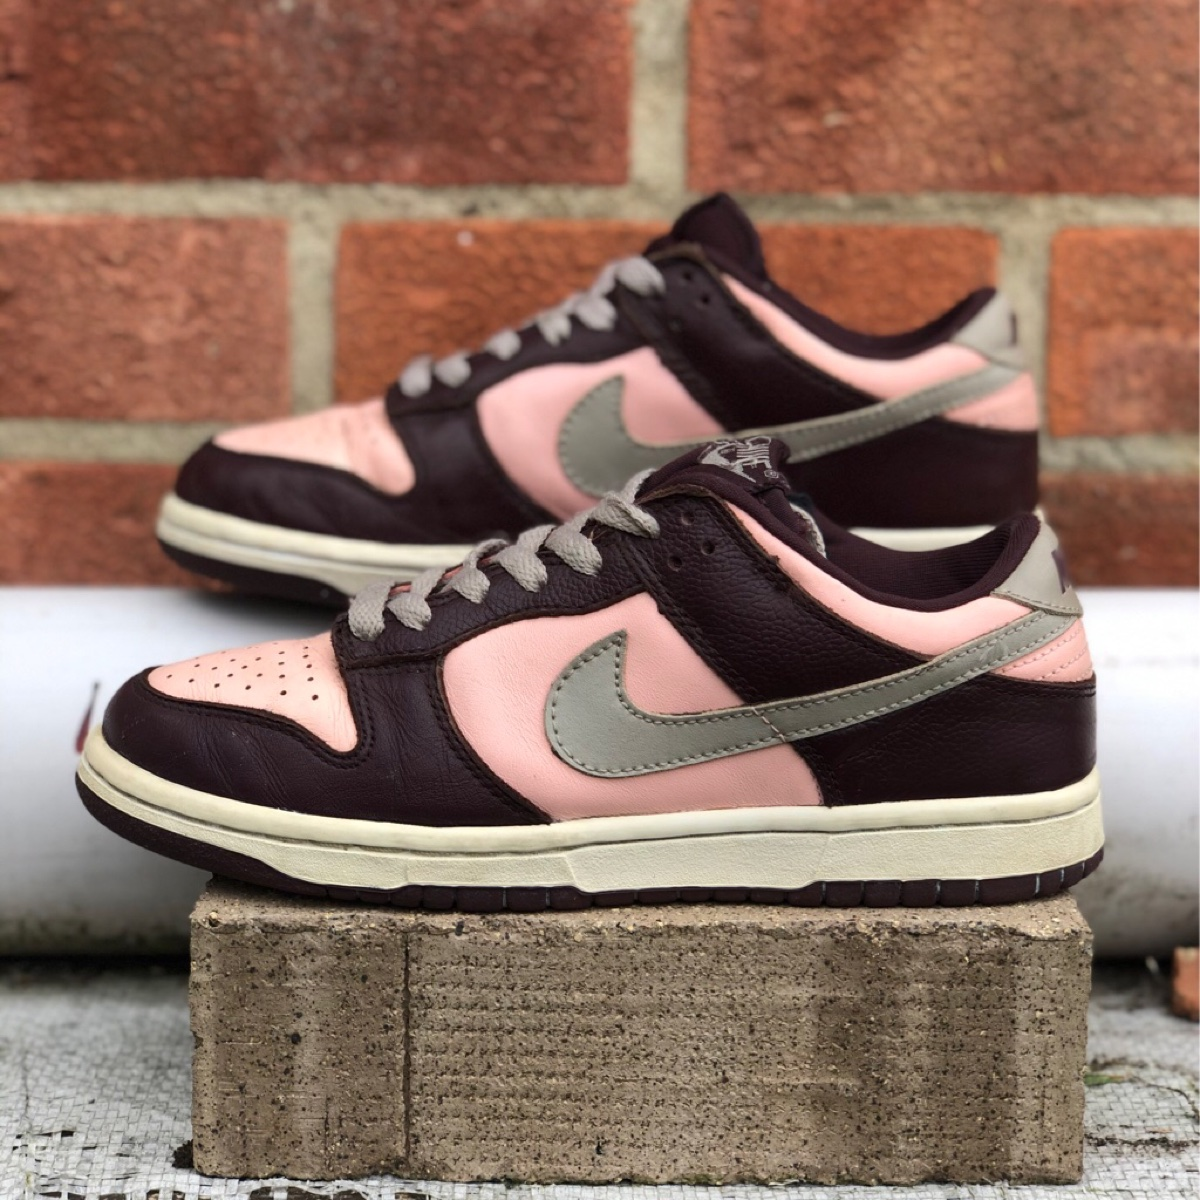 Nike SB Dunk Low Cherry Sample From 2003